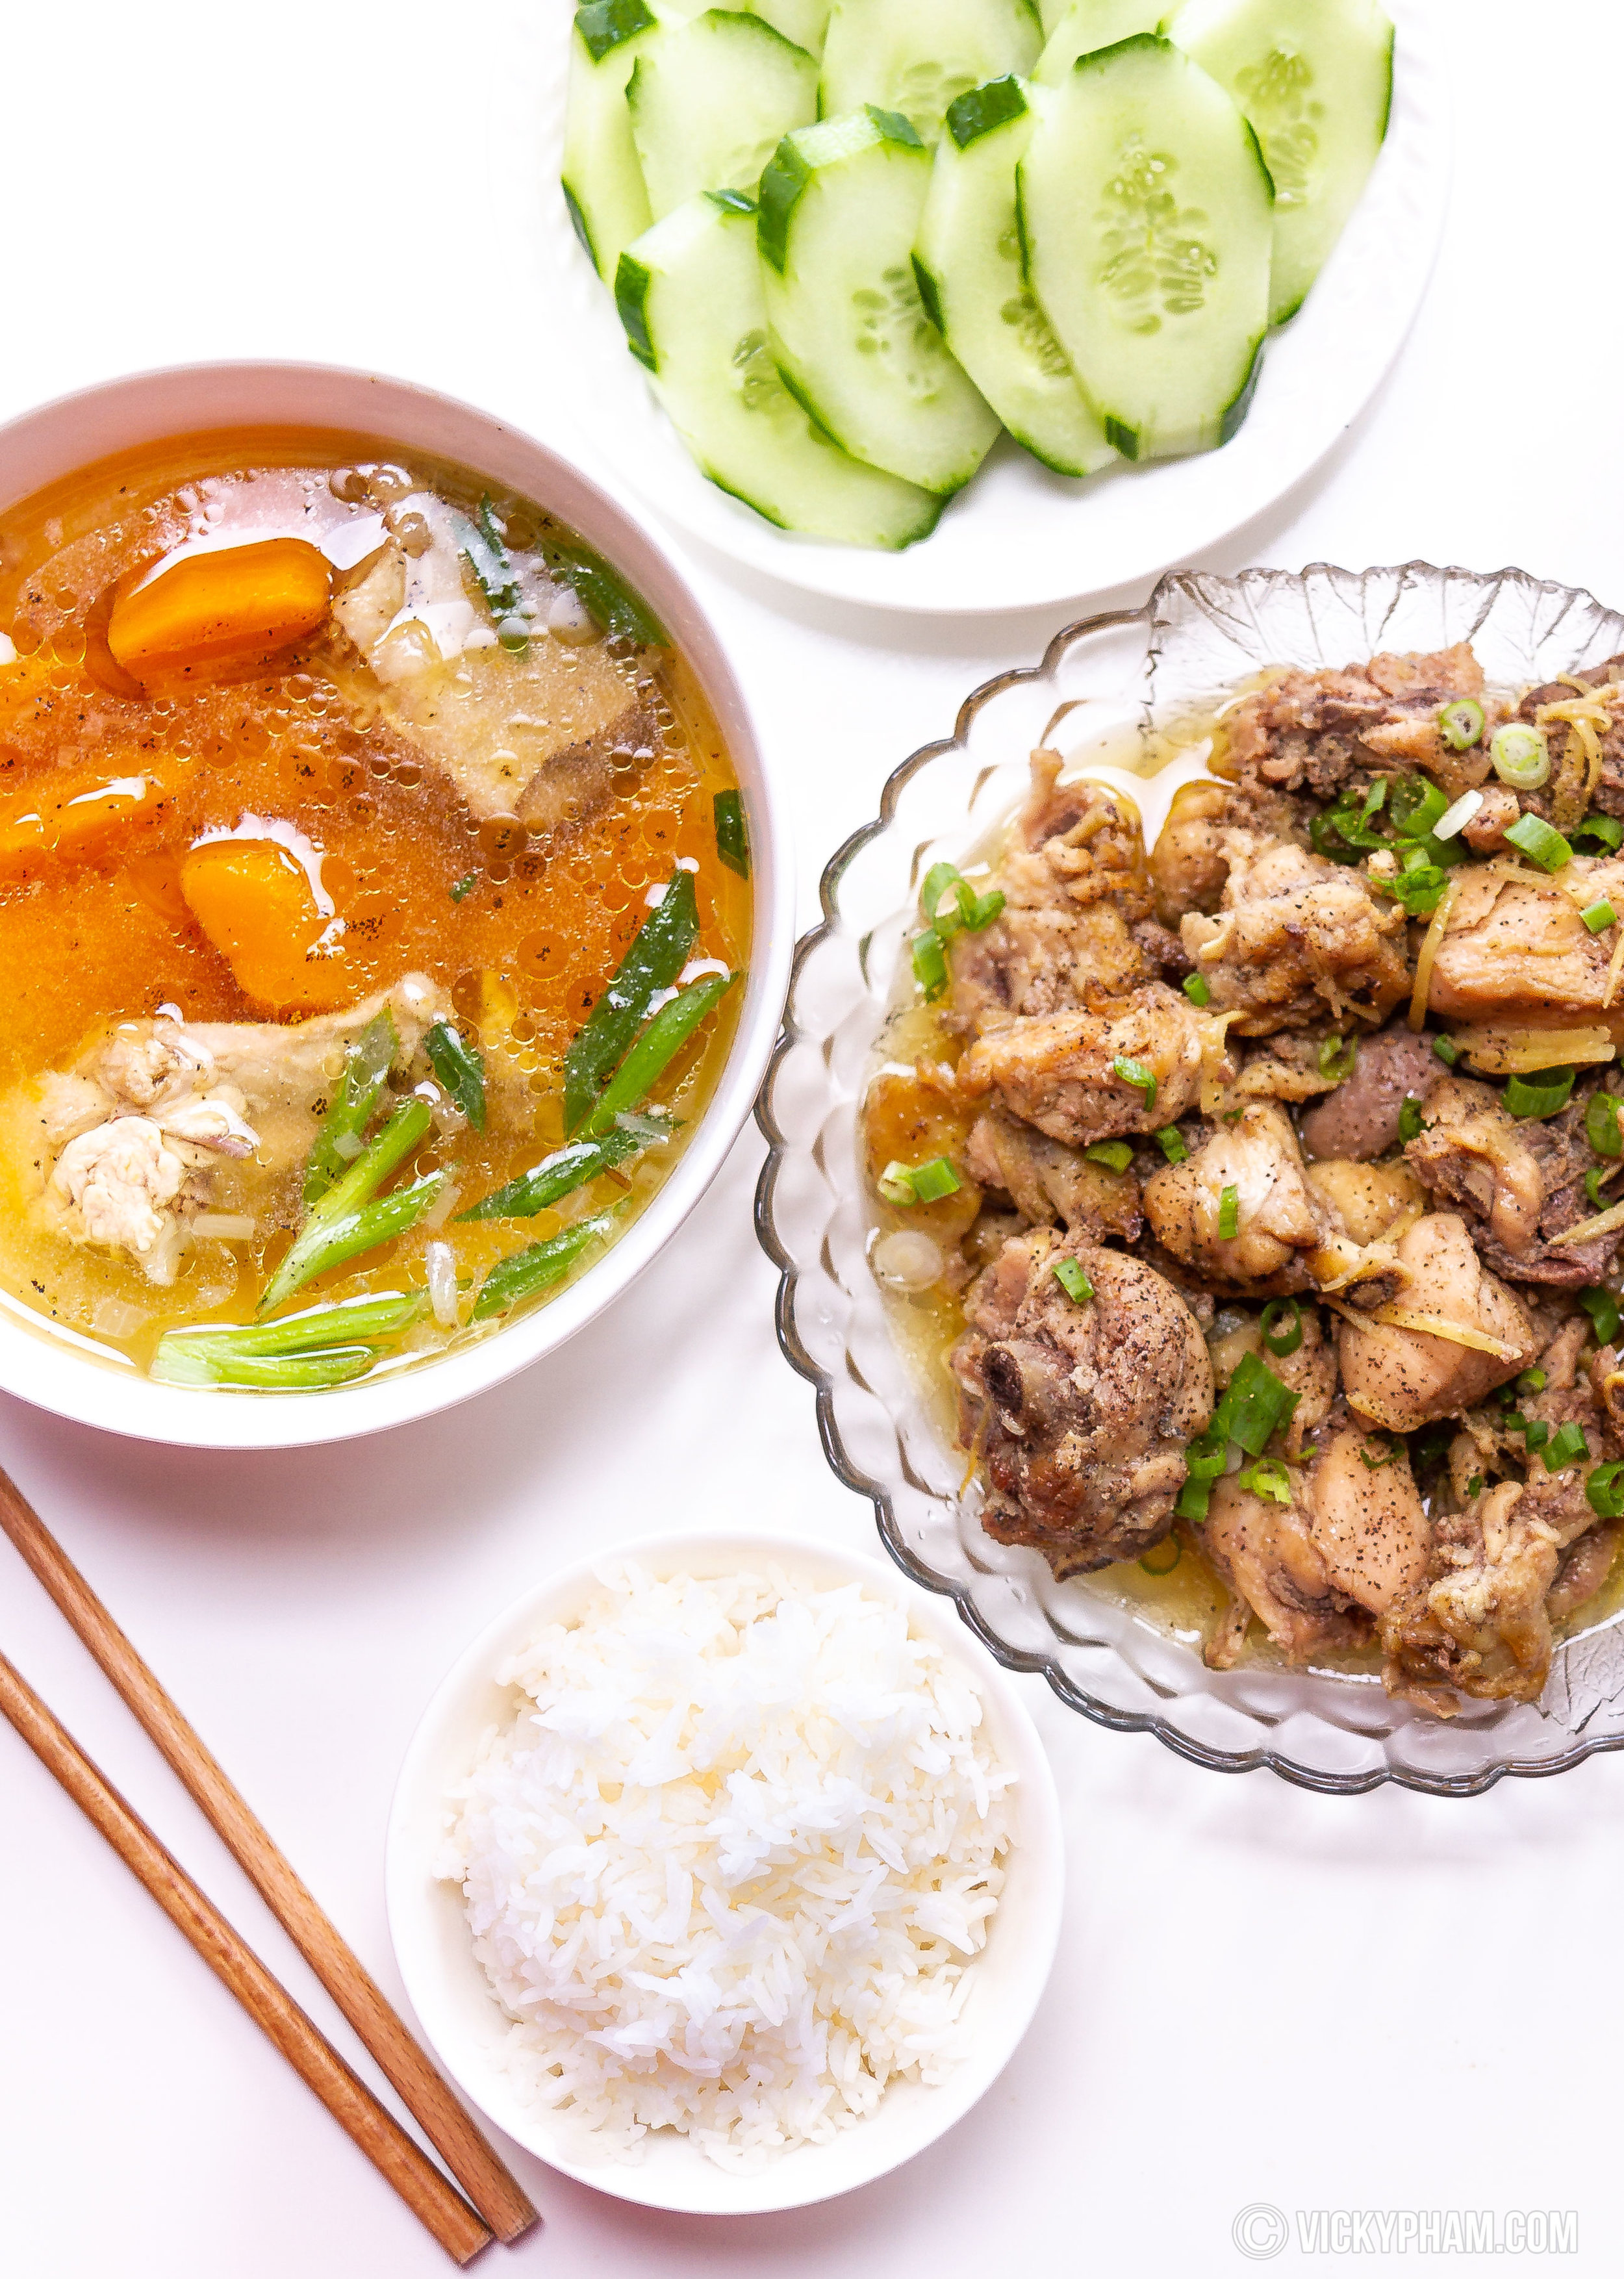 A complete Vietnamese family meal: Chicken kabocha squash soup, caramelized ginger chicken, cucumbers and steamed rice.